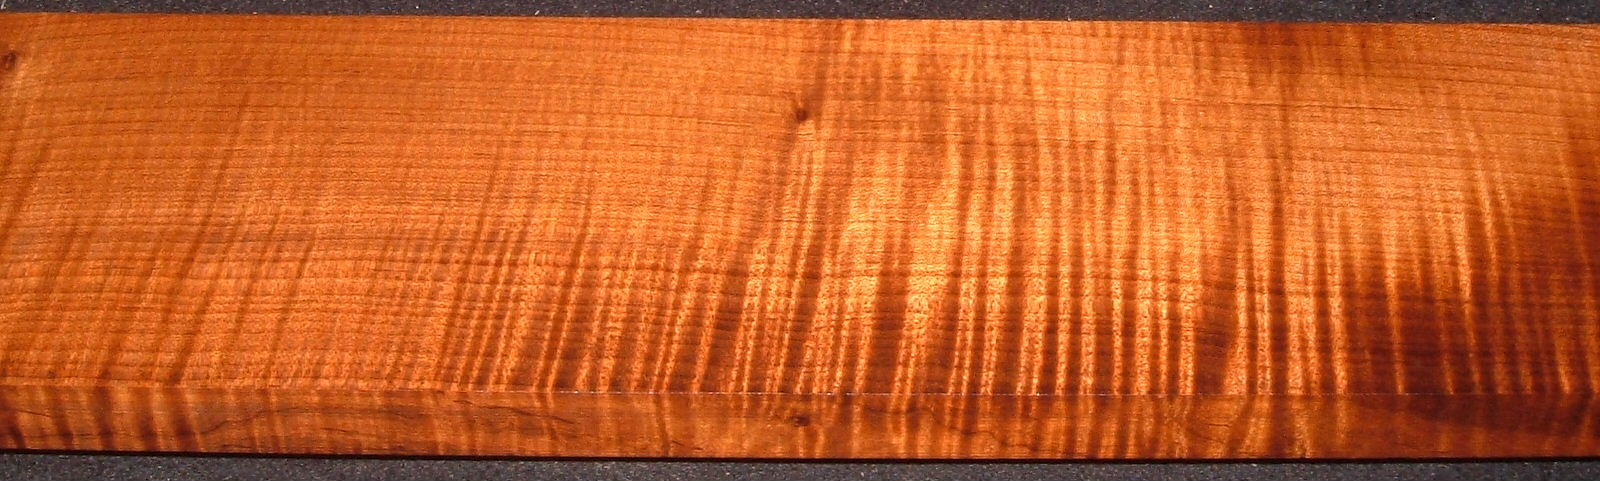 QRM2005-153, 7/8x5x50, Quartersawn Roasted Curly Maple